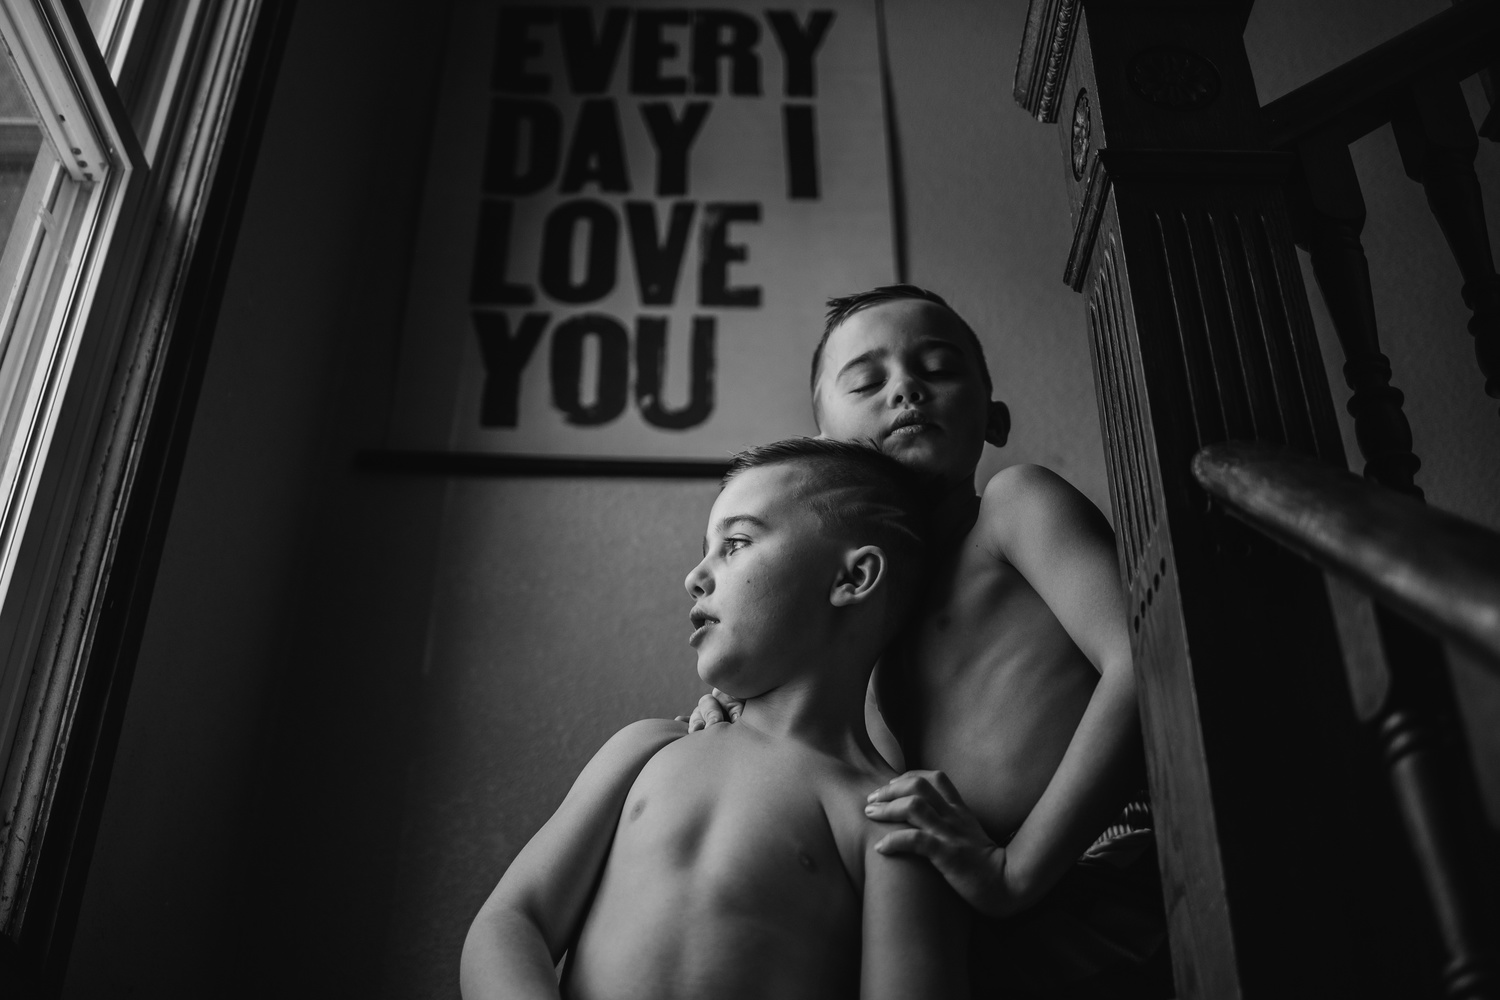 Every Day I Love You by Heather Wilson